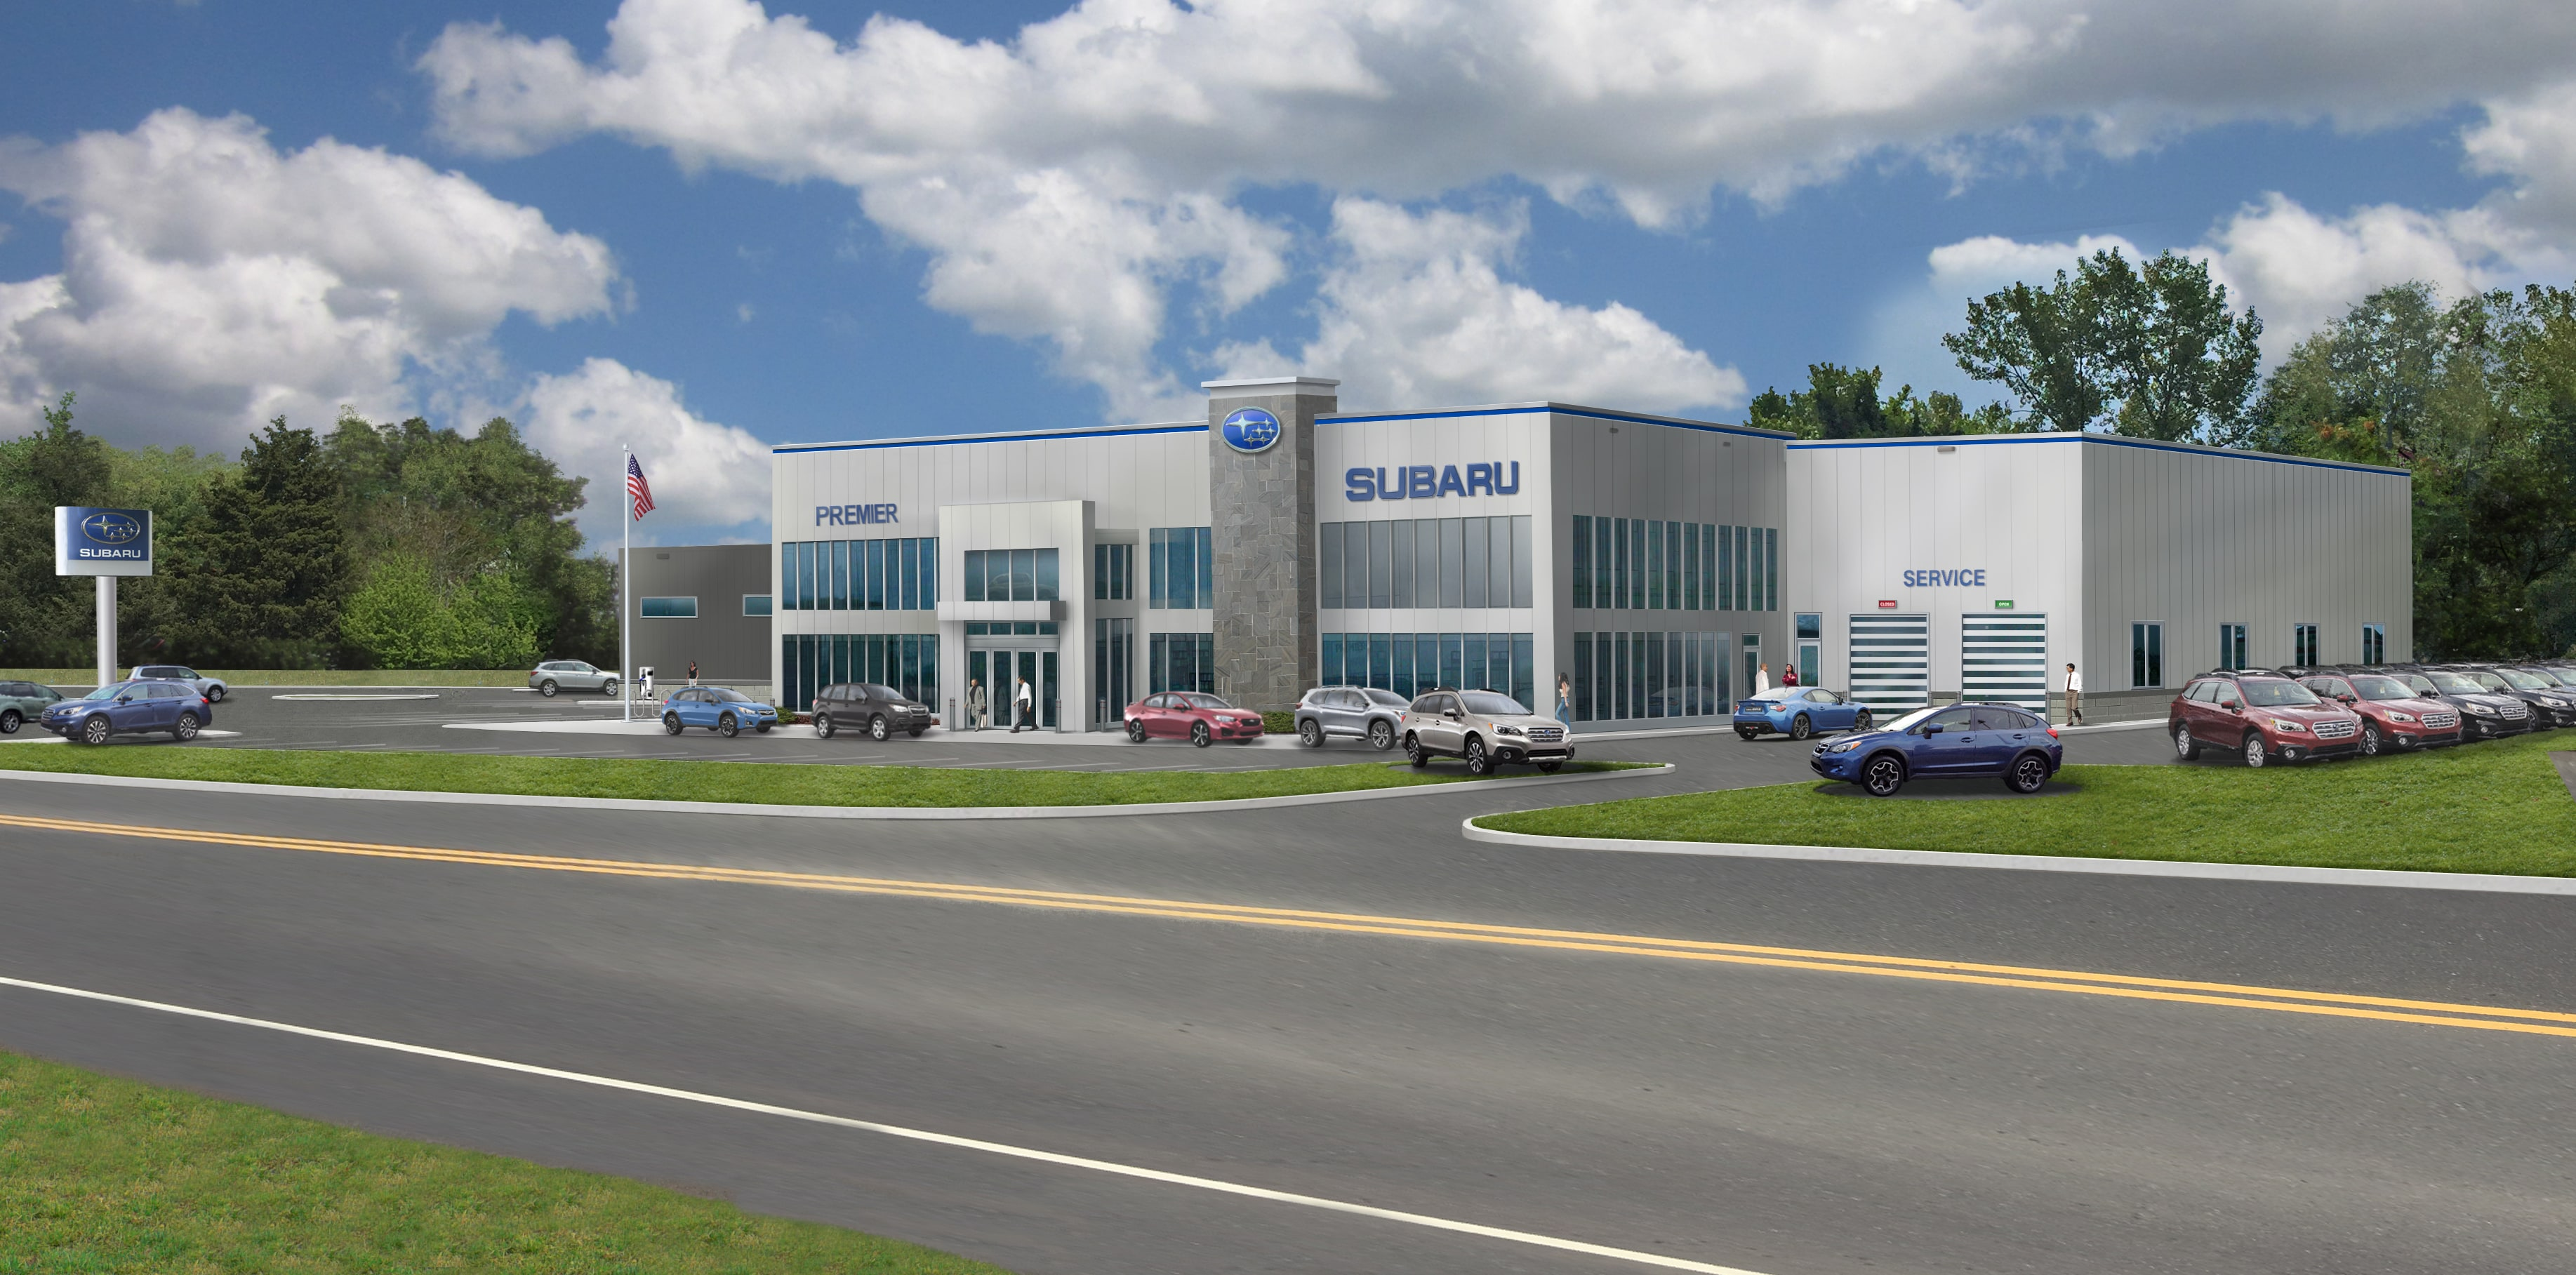 Subaru Dealers Ct >> The New Premier Subaru Facility Coming Soon Ct Subaru Dealer